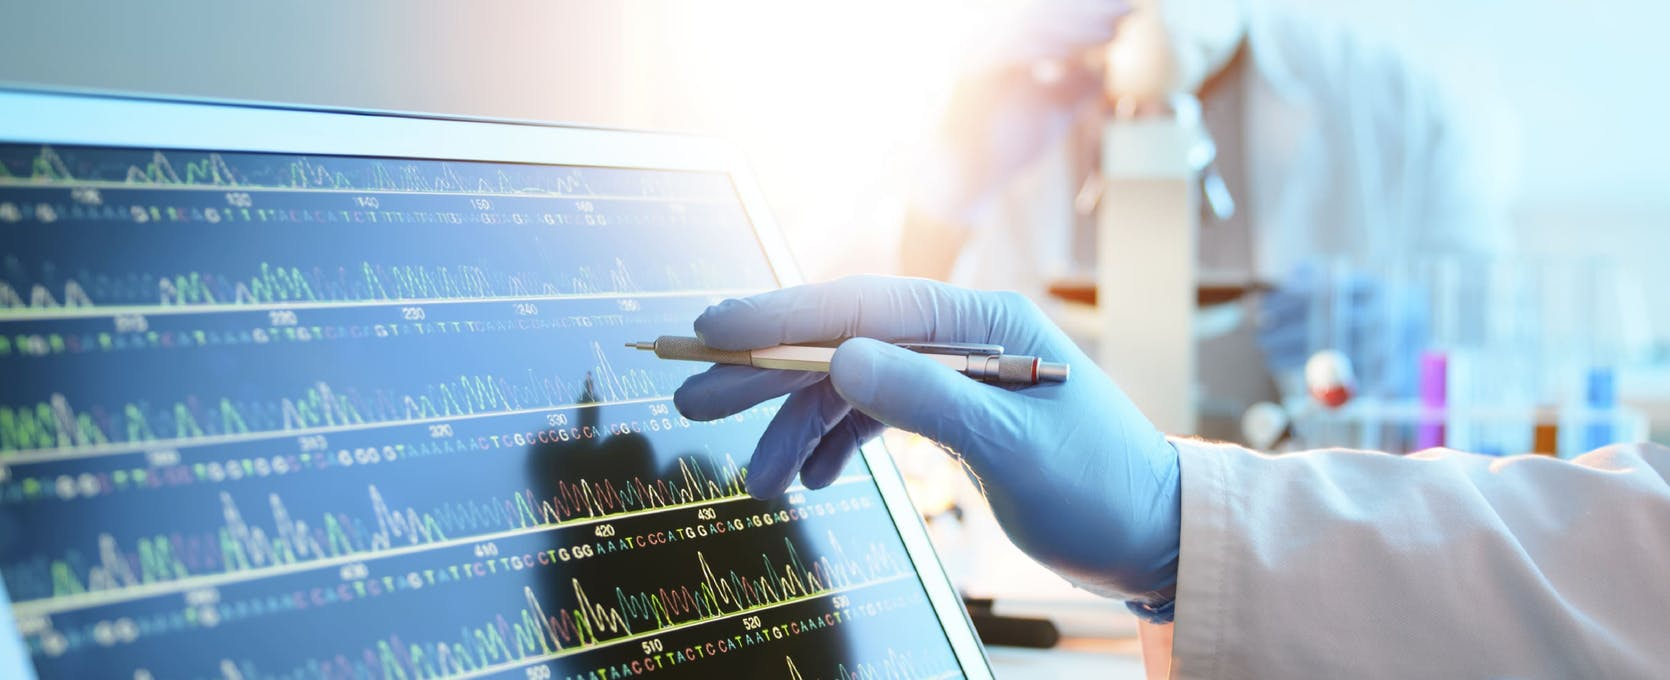 Medical technician analyzes data in a healthcare lab